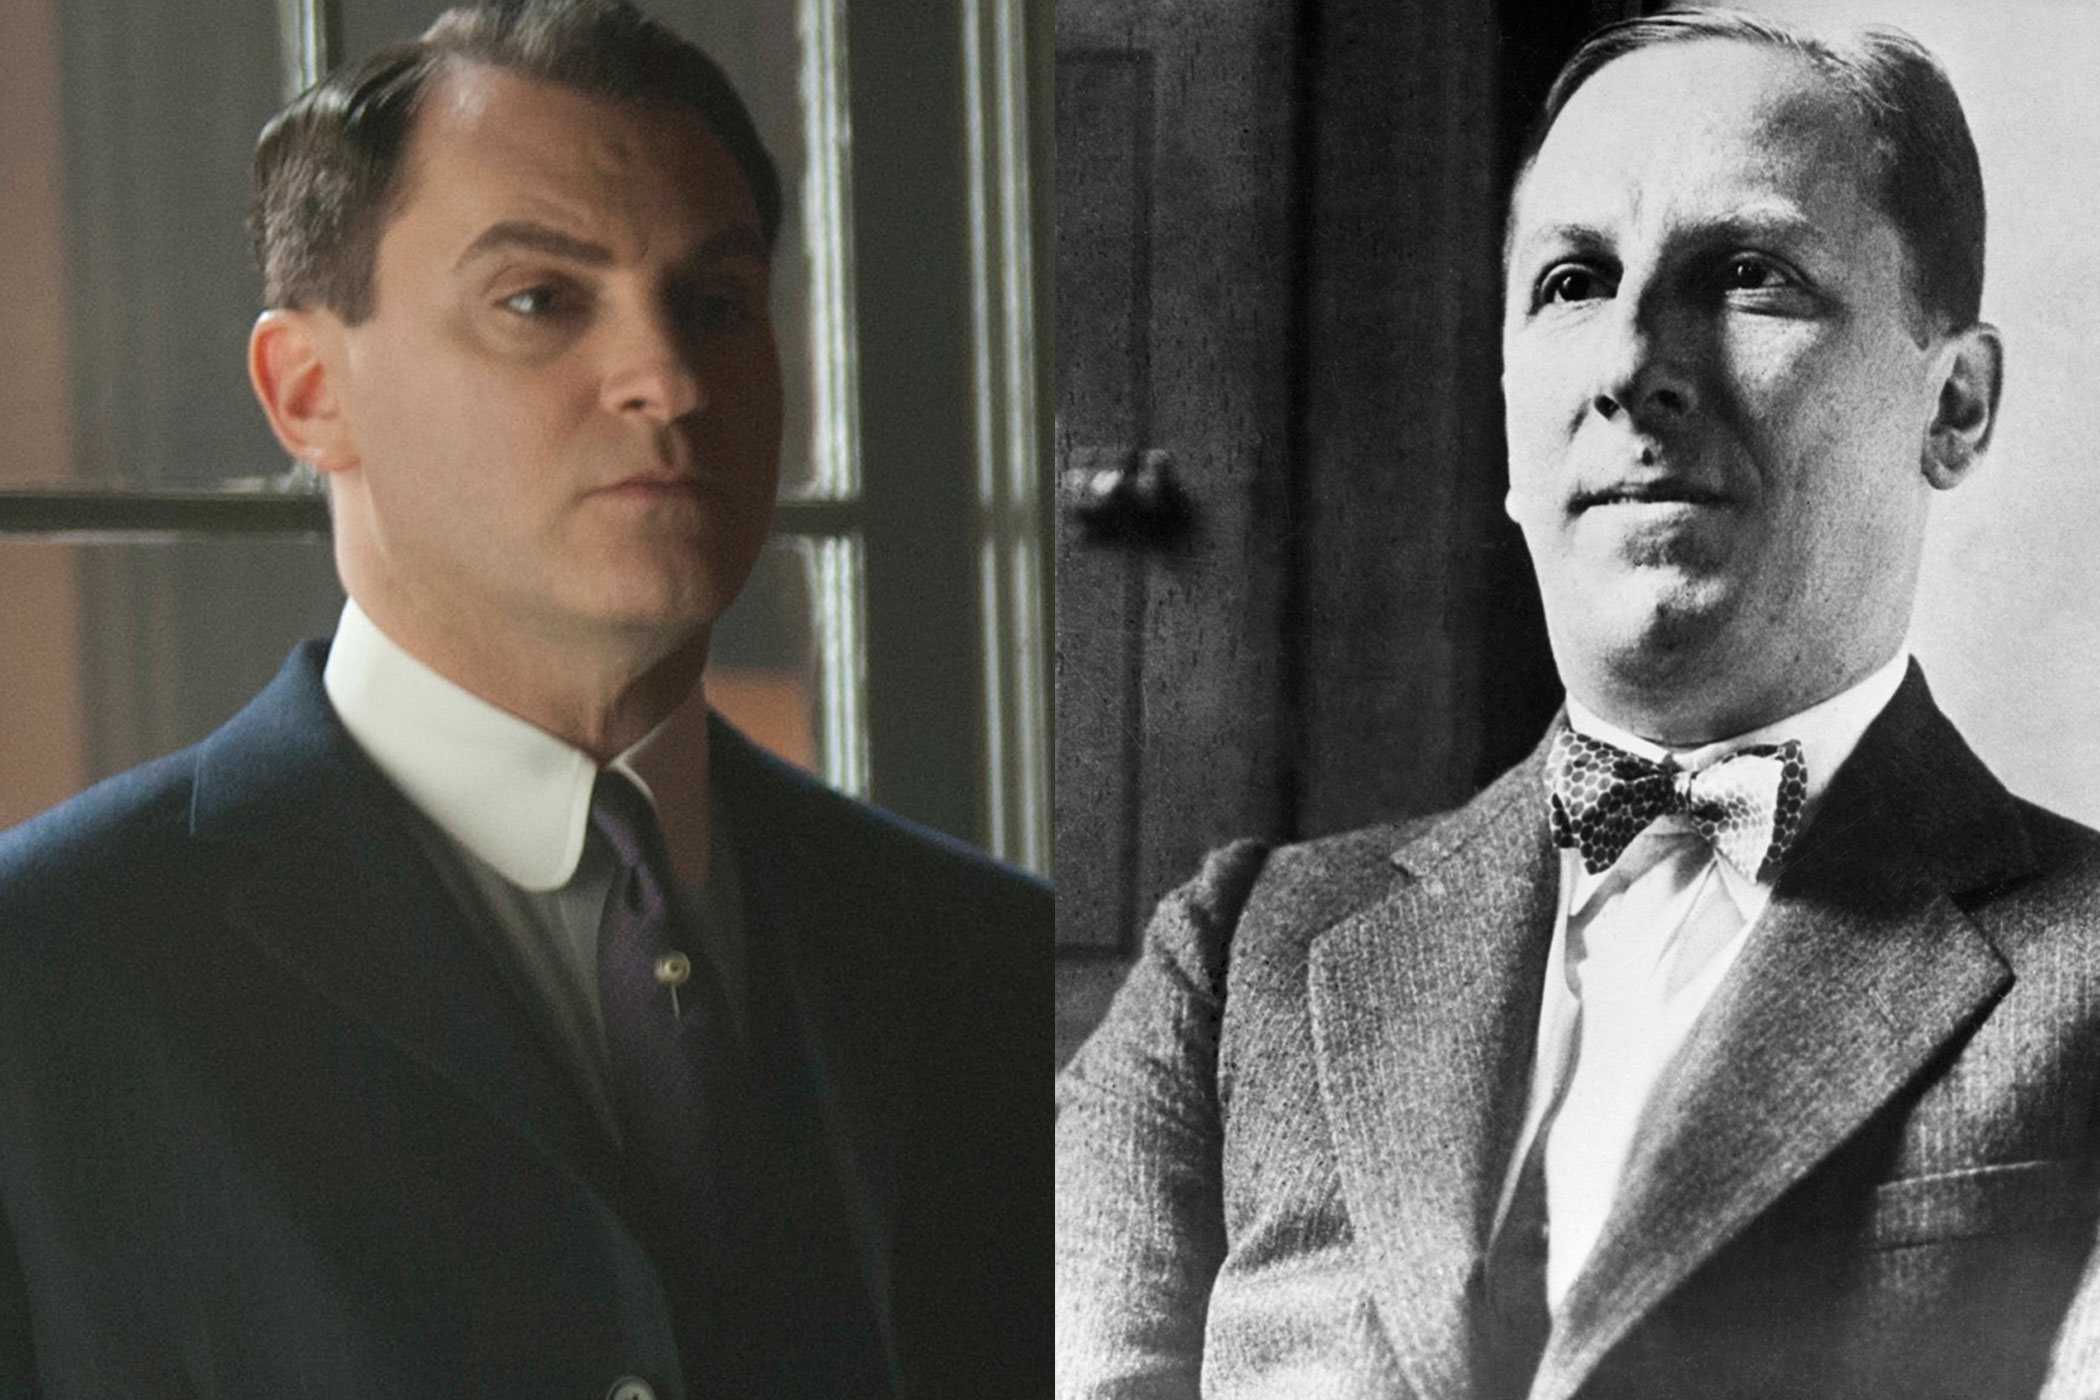 Arnold Rothstein:                               Real-life Arnold Rothstein was a high profile gambler and gangster who famously fixed the 1919 World Series, just like Michael Stuhlbarg's on-screen version.